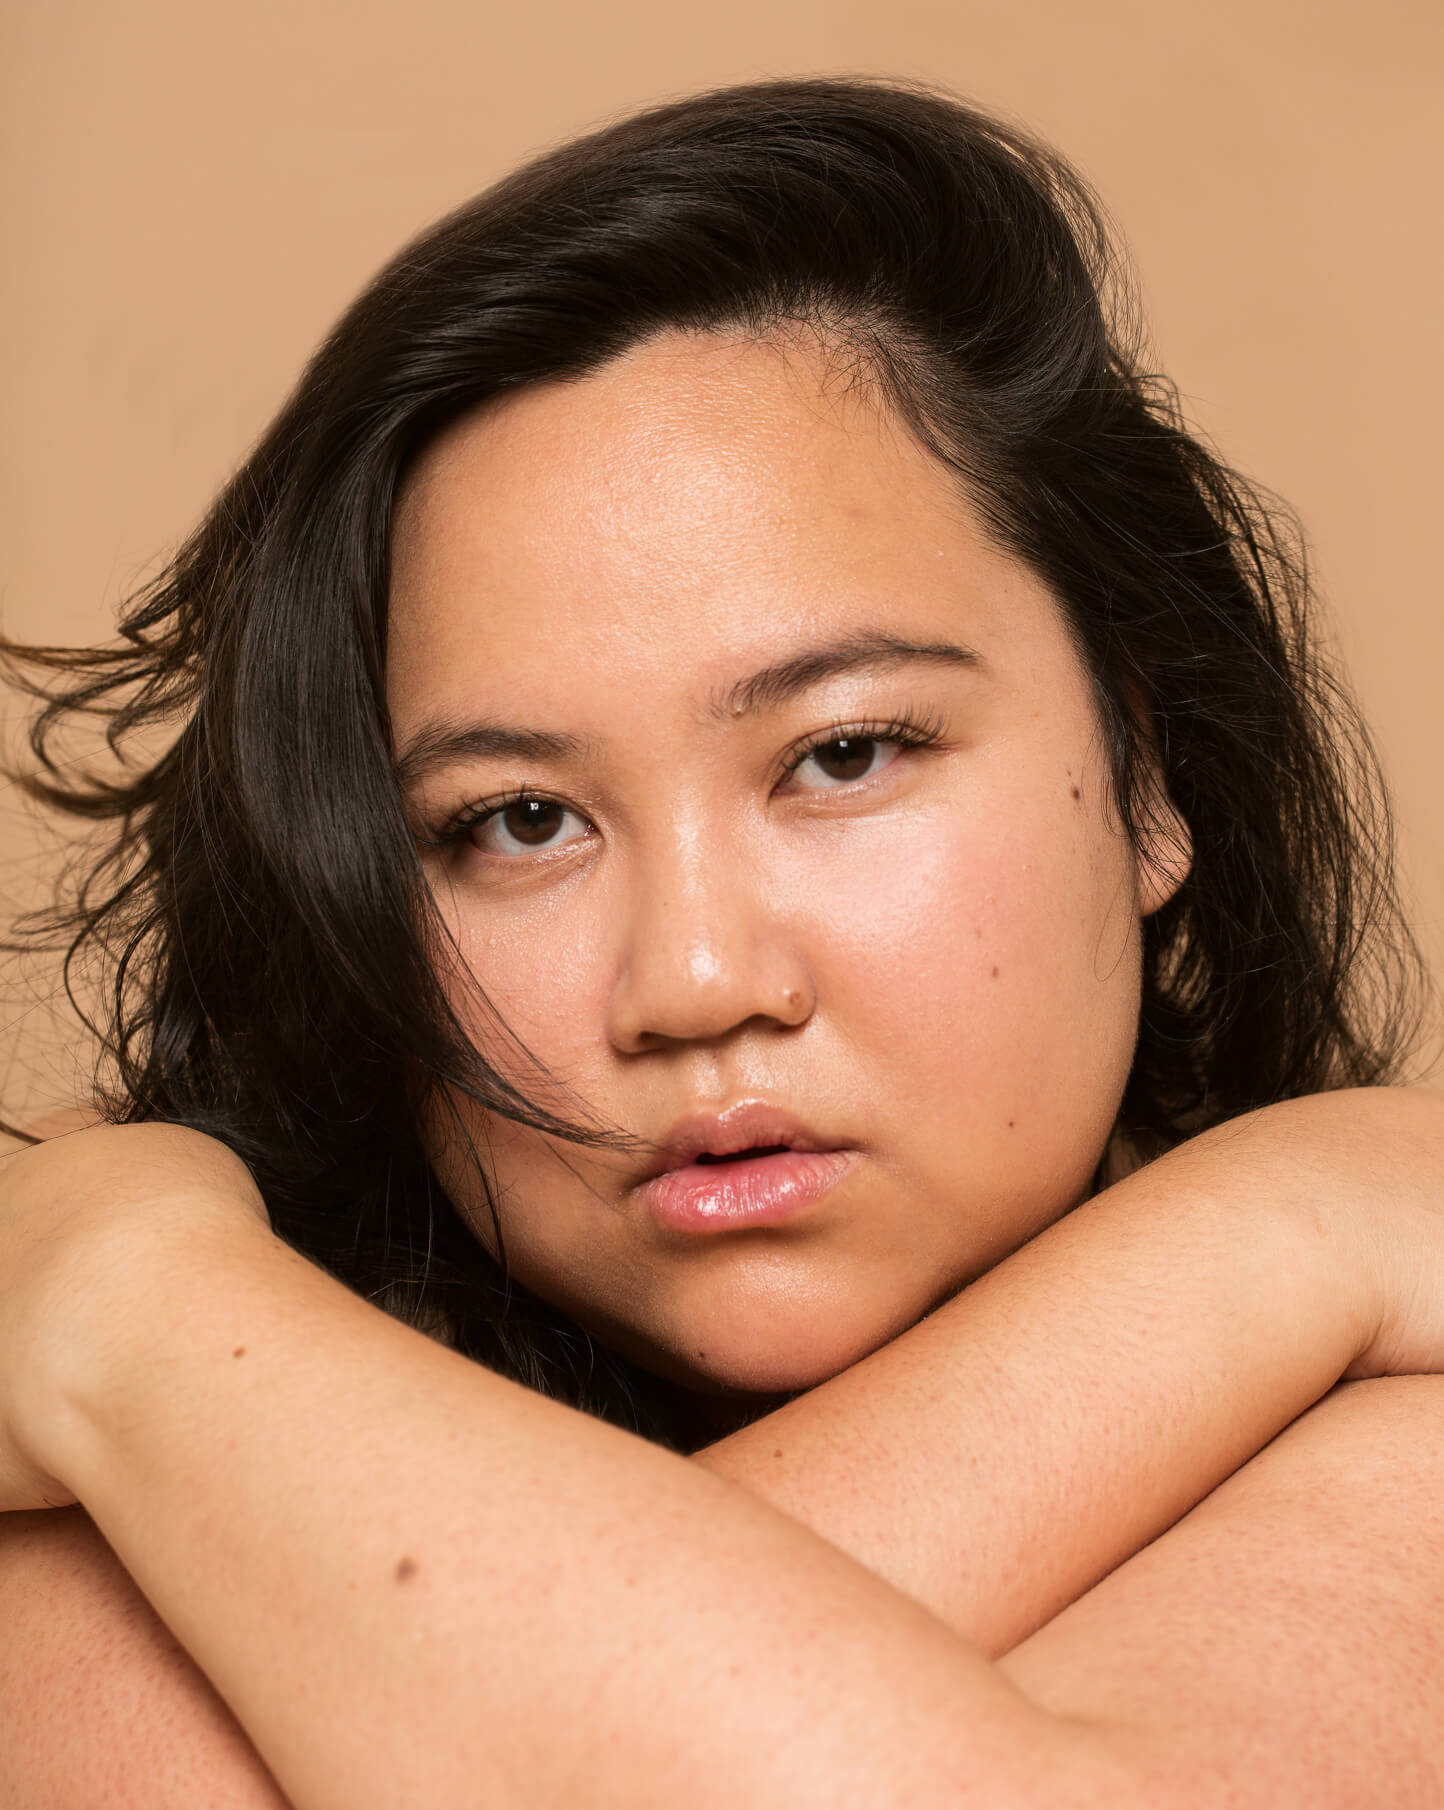 Photo of a woman hugging herself (Phoebe Cheong Photography)